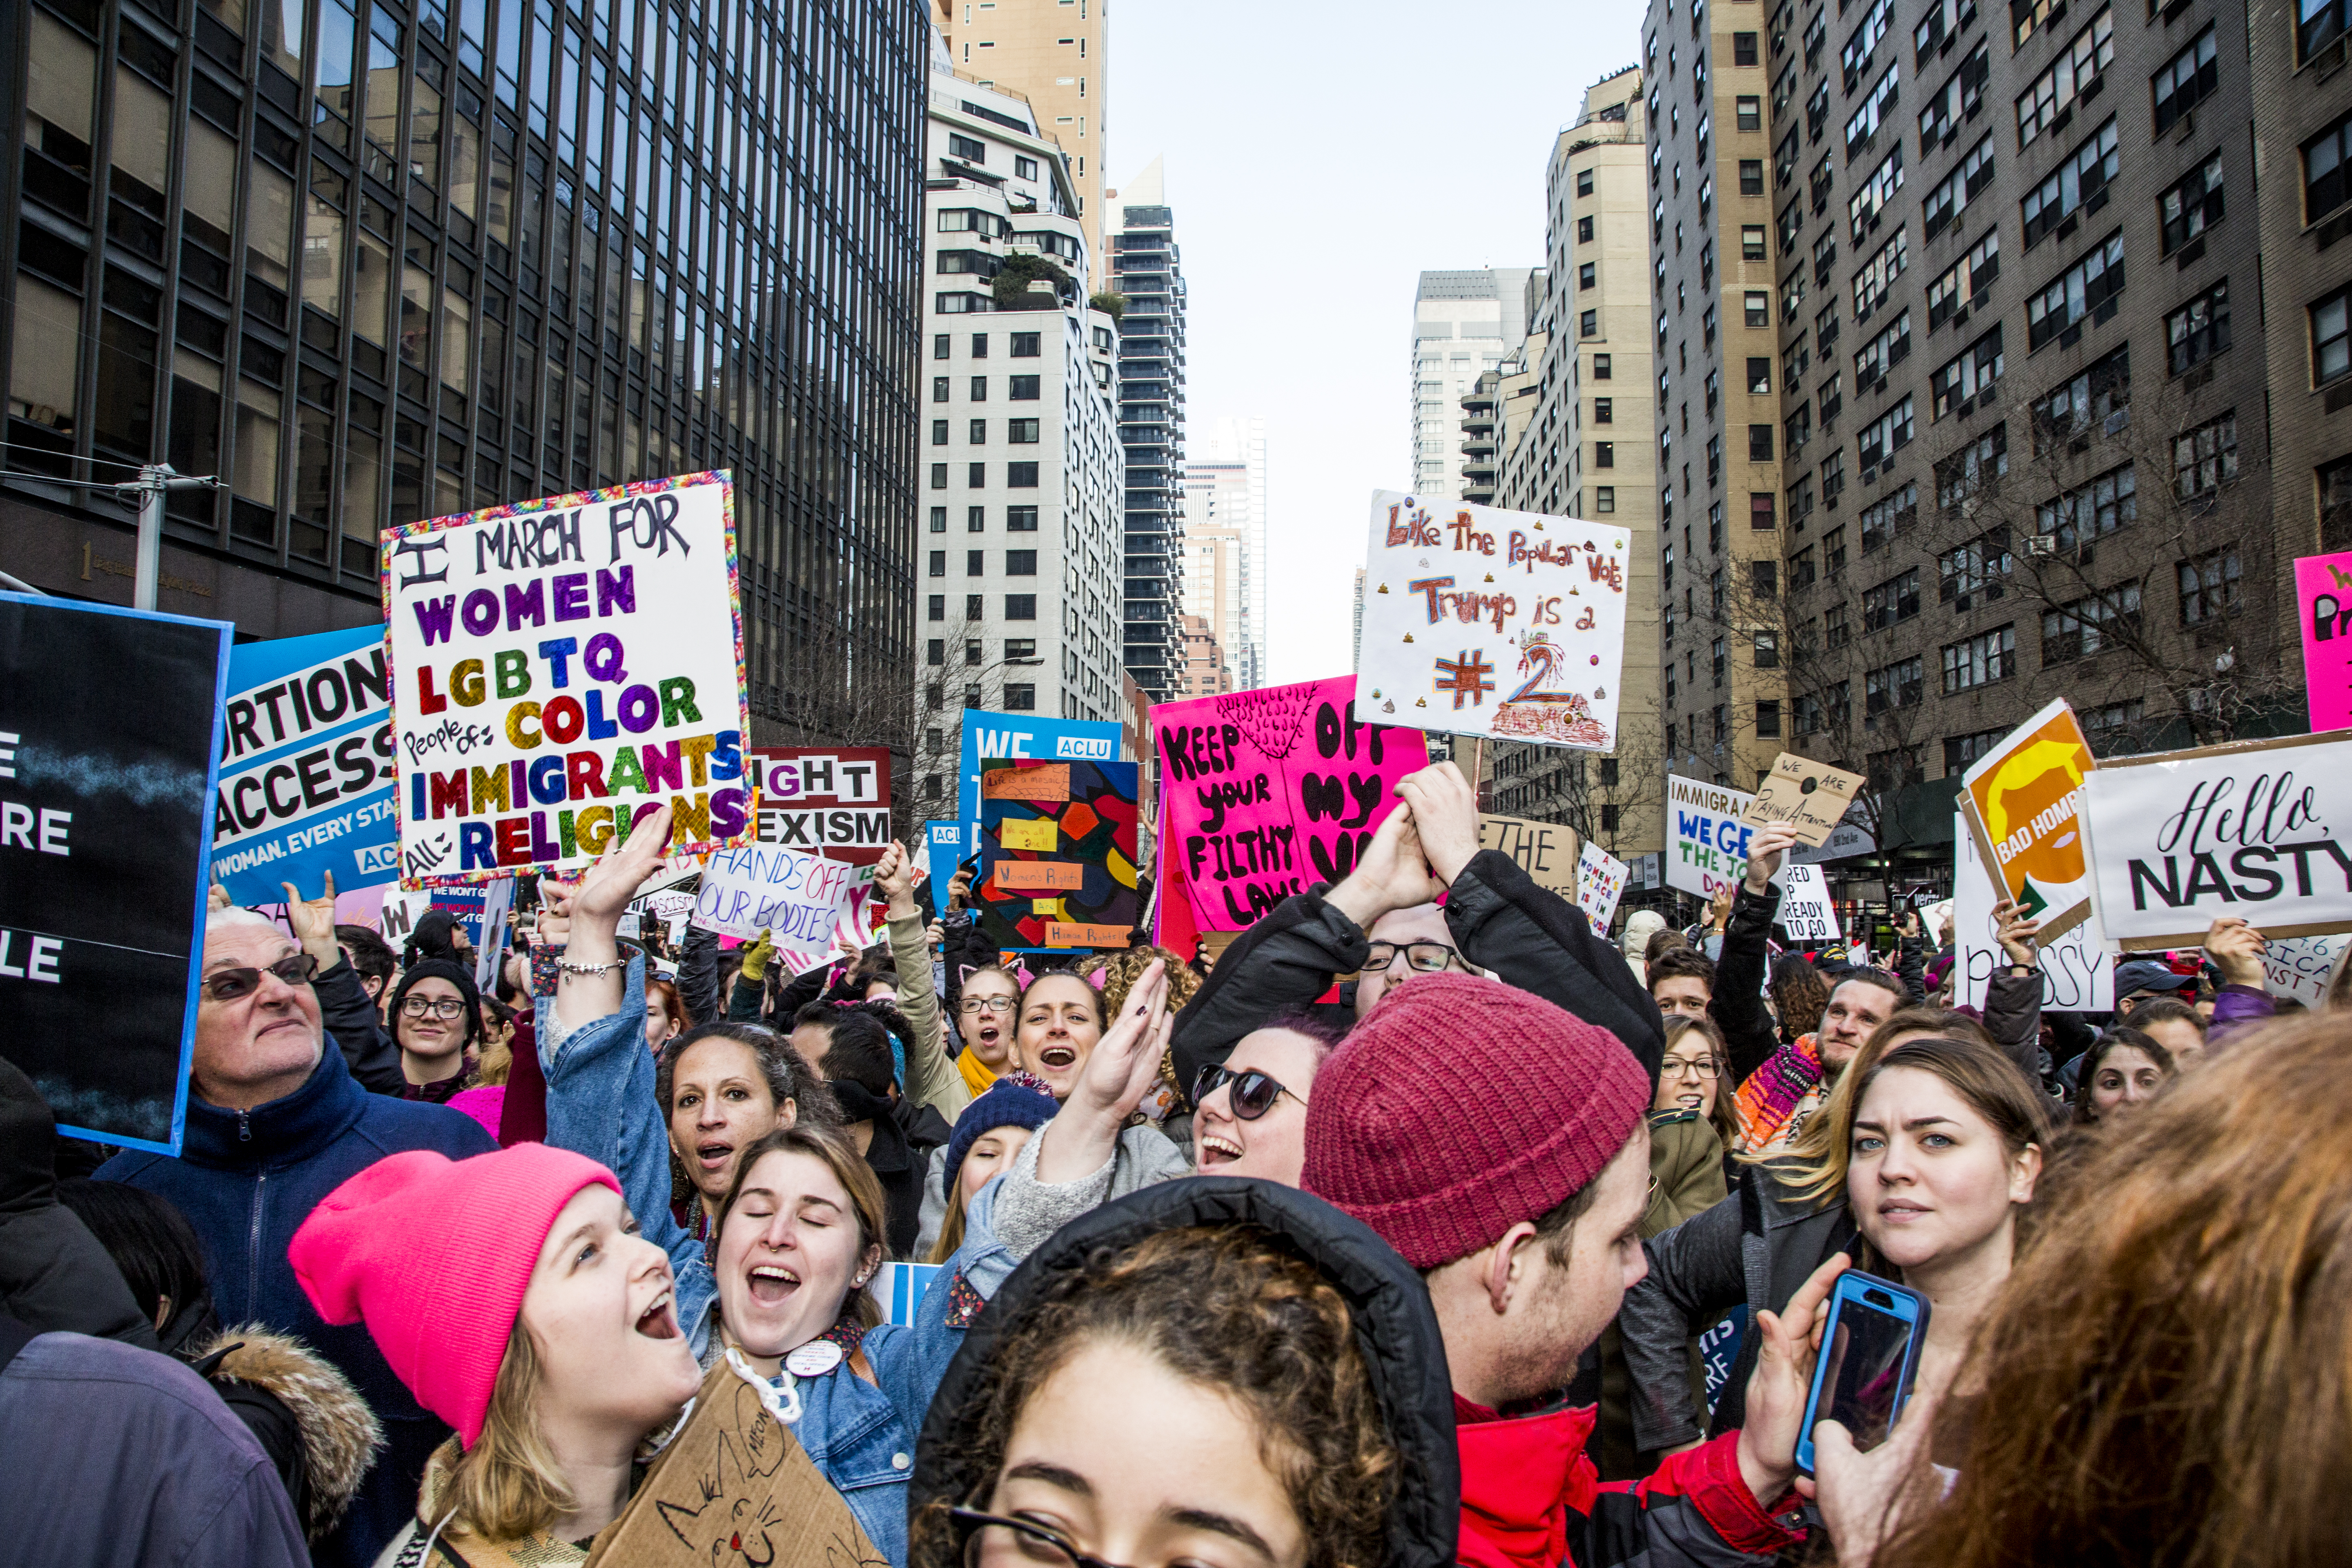 Over 400 thousand protestors participated in the NYC Women's March on Jan. 21, 2017 in resistance to US President Donald Trump. (Brit Worgan-- Getty)